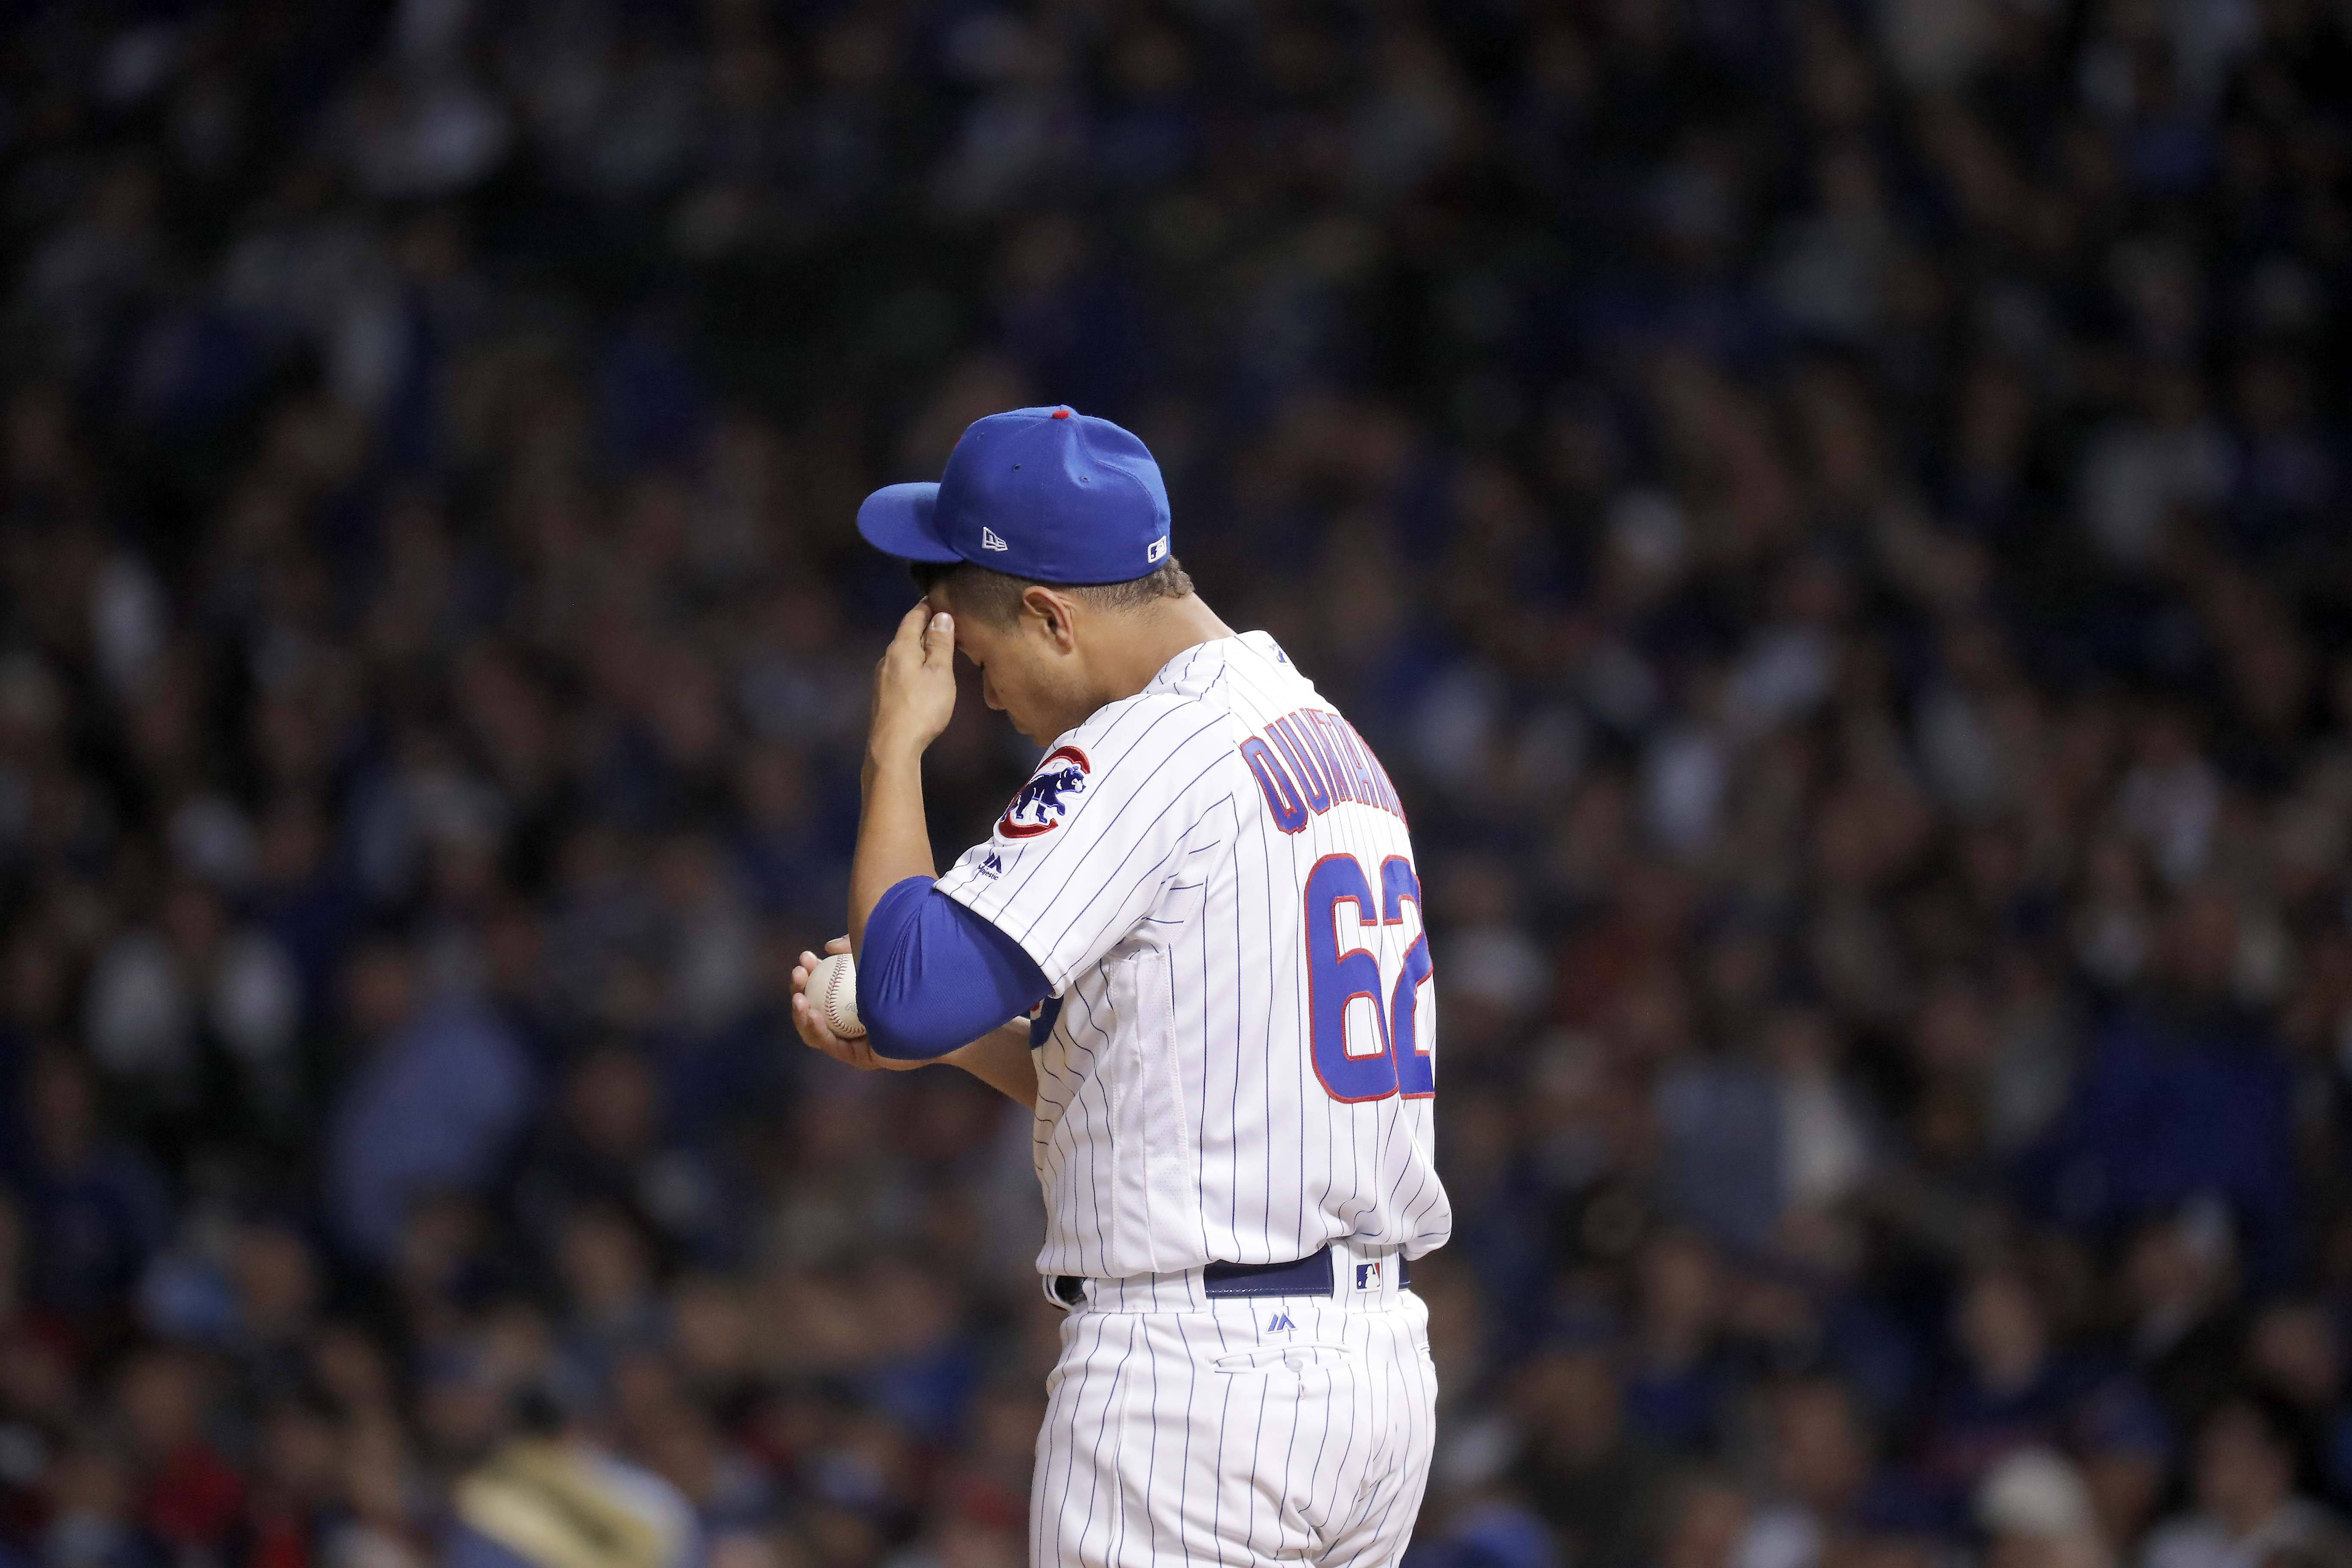 Chicago Cubs starting pitcher Jose Quintana (62) tries to collect himself in the third inning during Game 5 of the National League Championship Series, Oct, 19 2017, at Wrigley Field in Chicago.